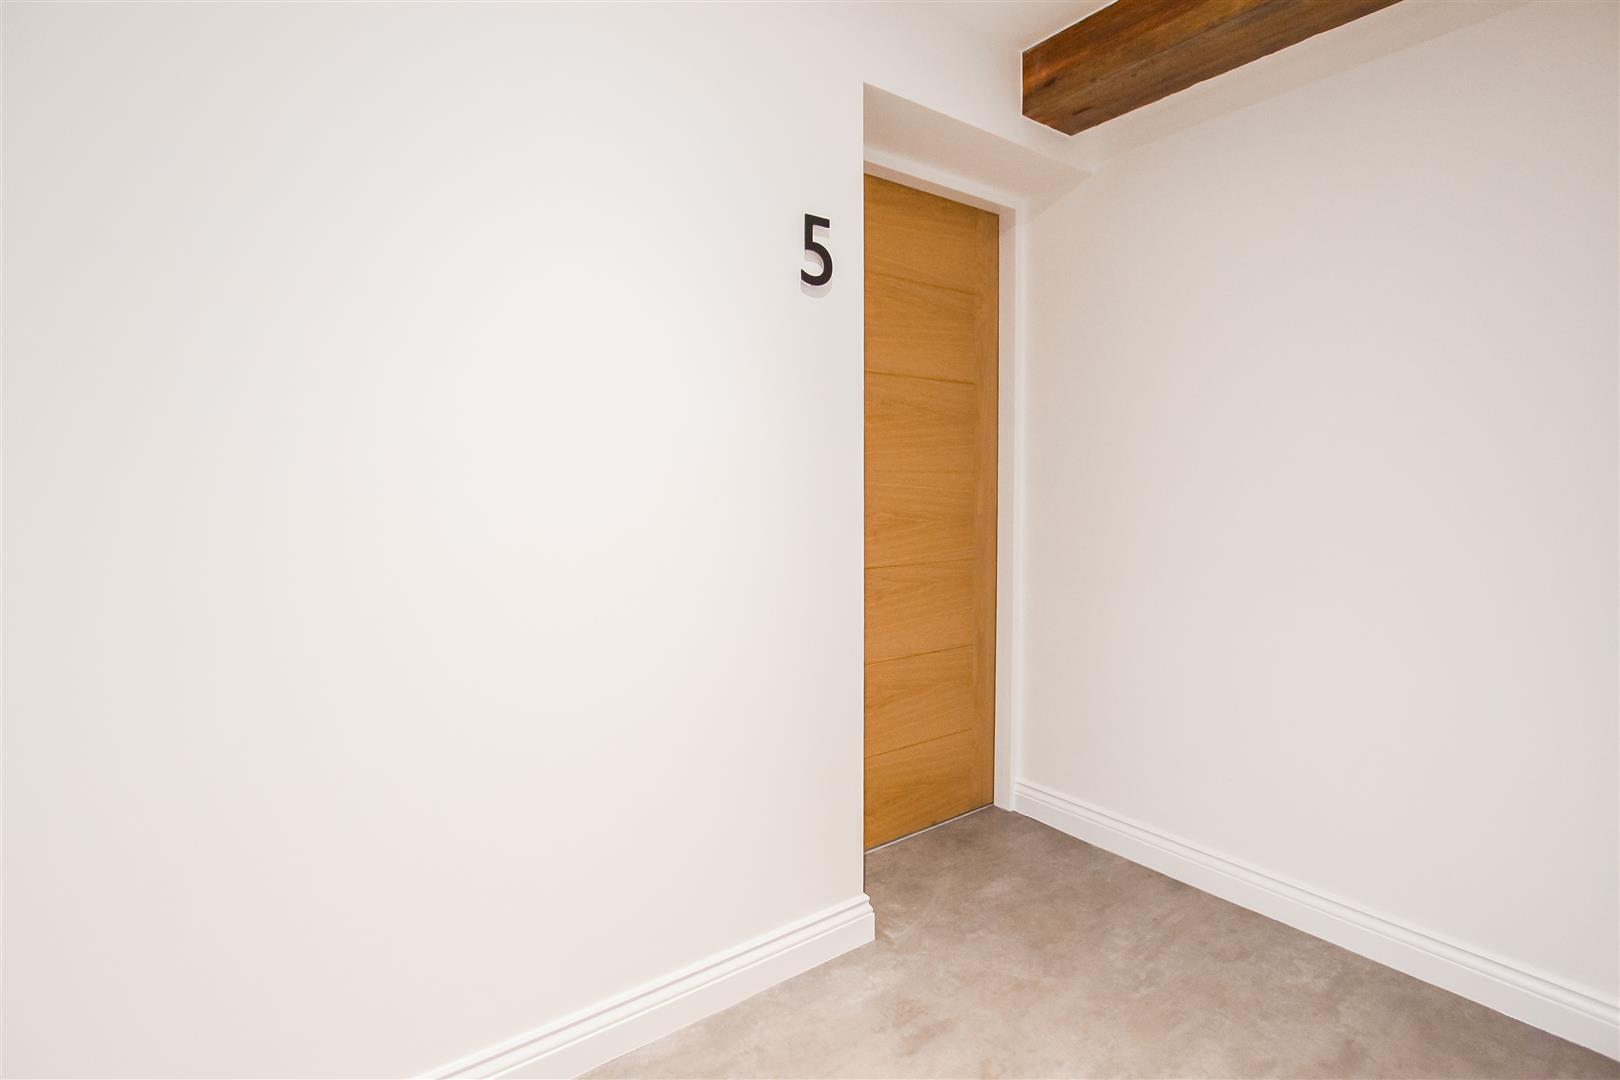 2 Bedroom Apartment For Sale - Image 12